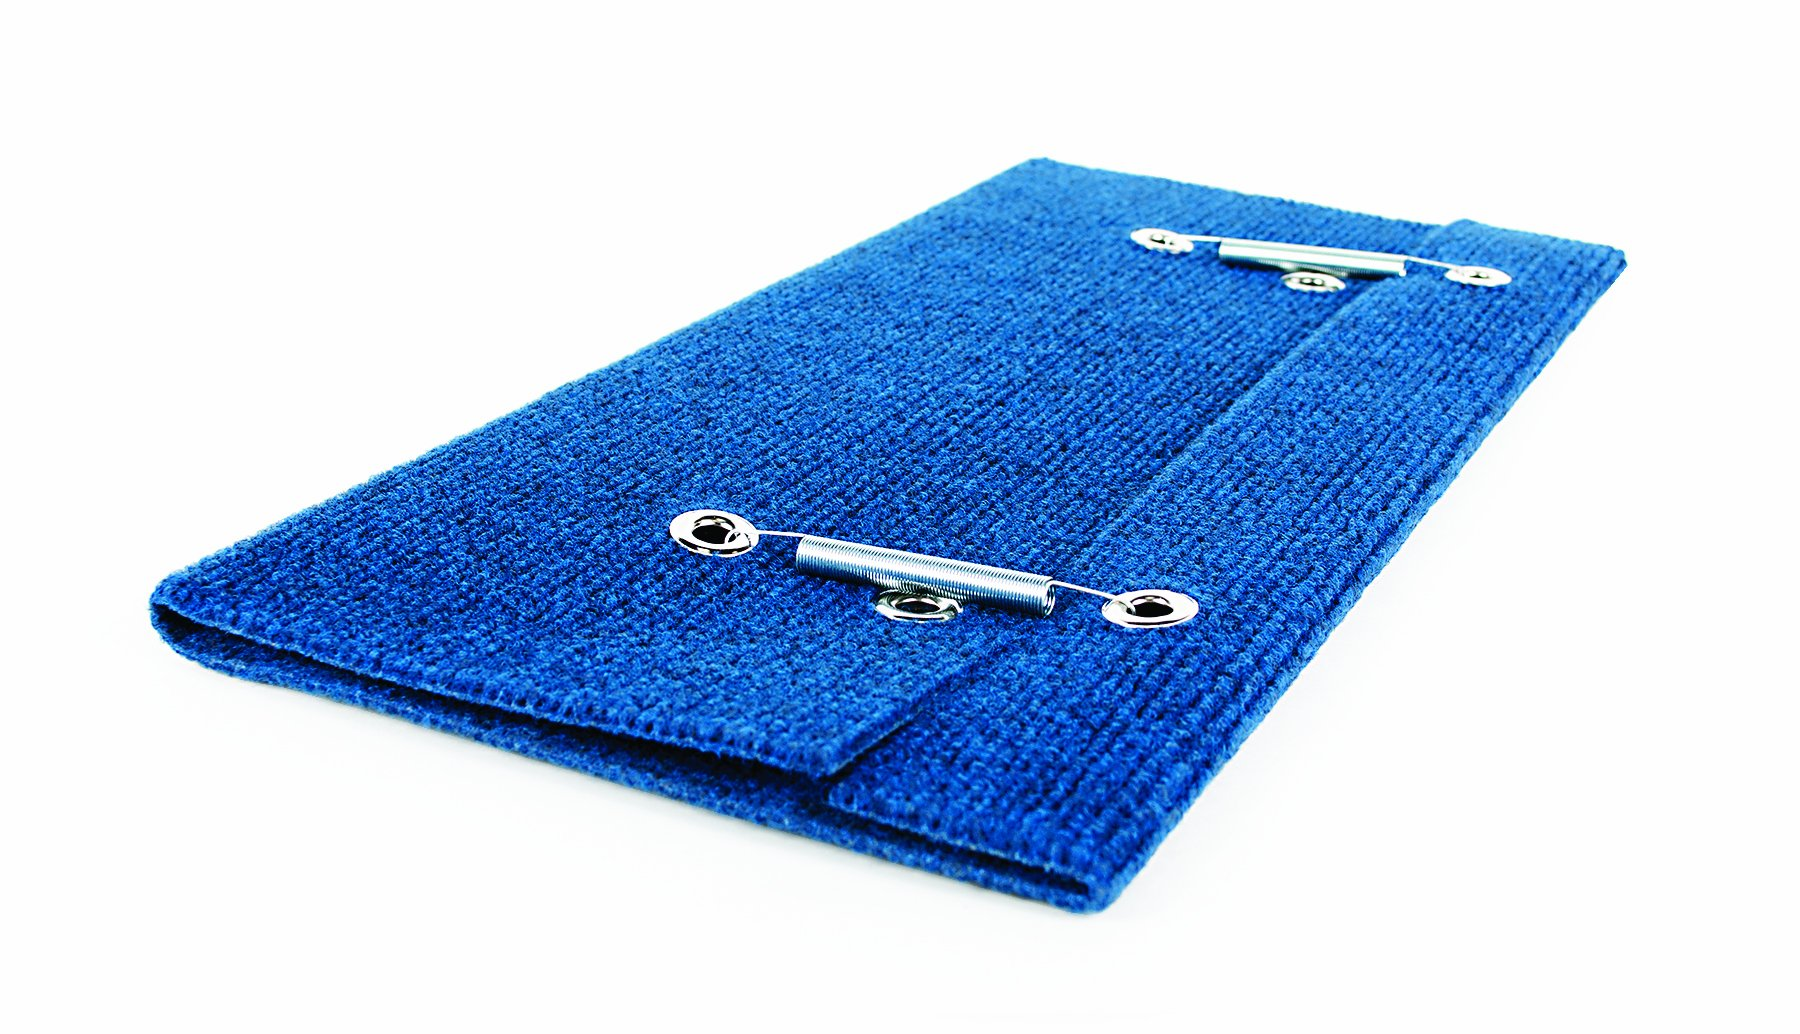 Camco Wrap Around Step Rug- Protects Your RV from Unwanted Tracked in Dirt, Works on Electrical and Manual RV Steps - Extra Large (Blue) (42934)